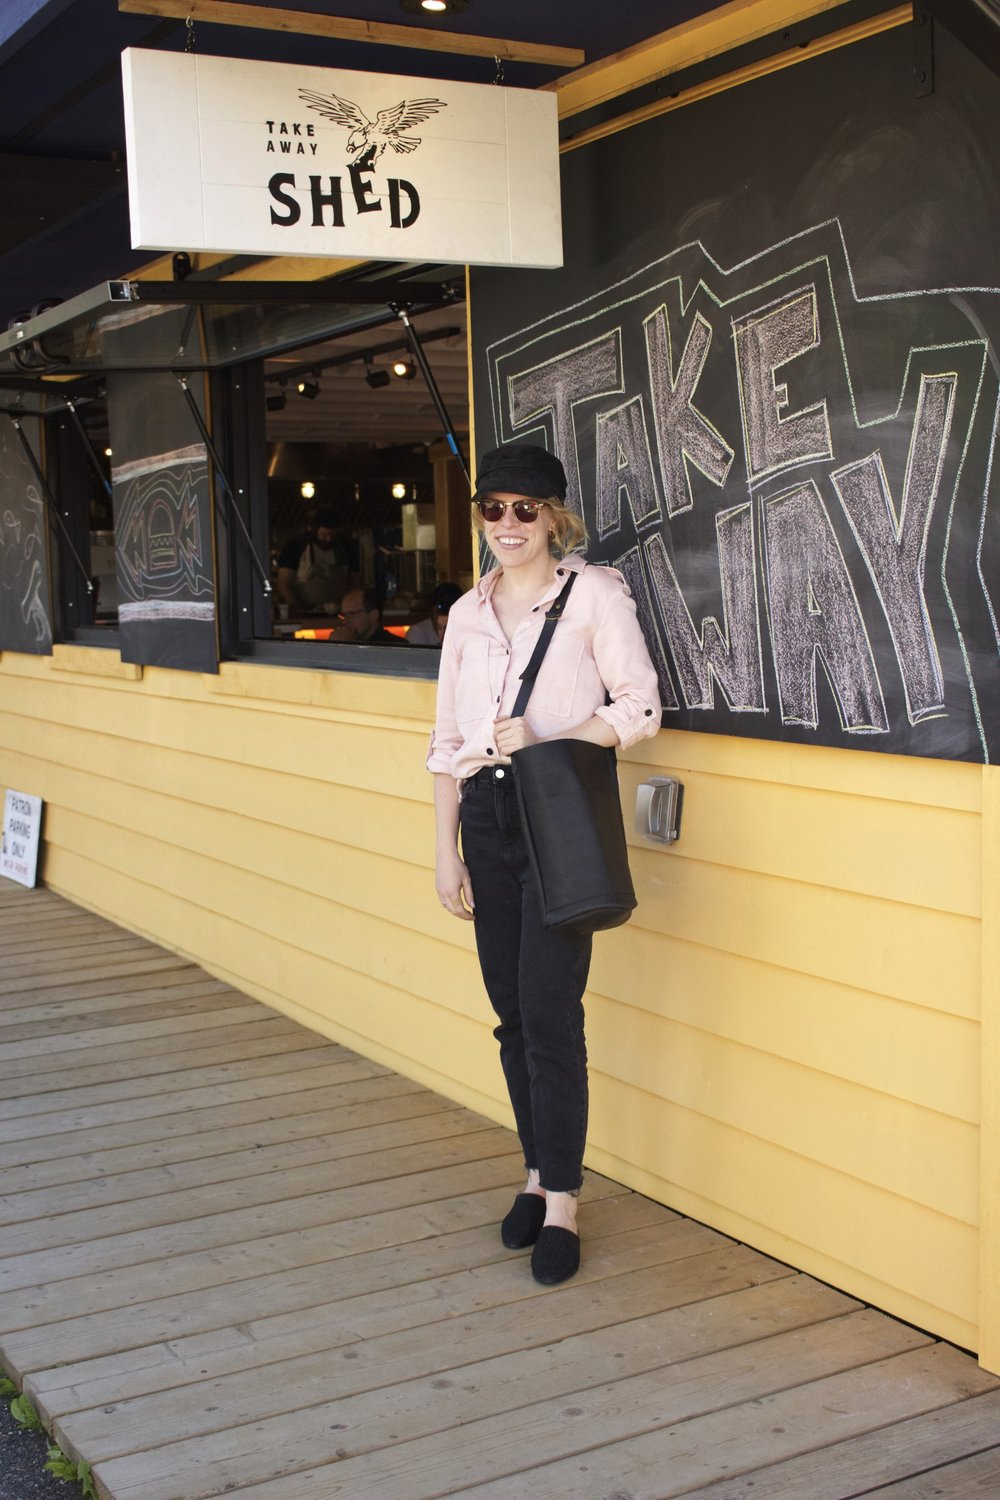 Zara    Blouse,    Topshop    Black Jeans,    Free People    Baker Boy Hat,    Machete    Earrings,    Market Canvas    Leather Bag,    Marks & Spencer    Slides